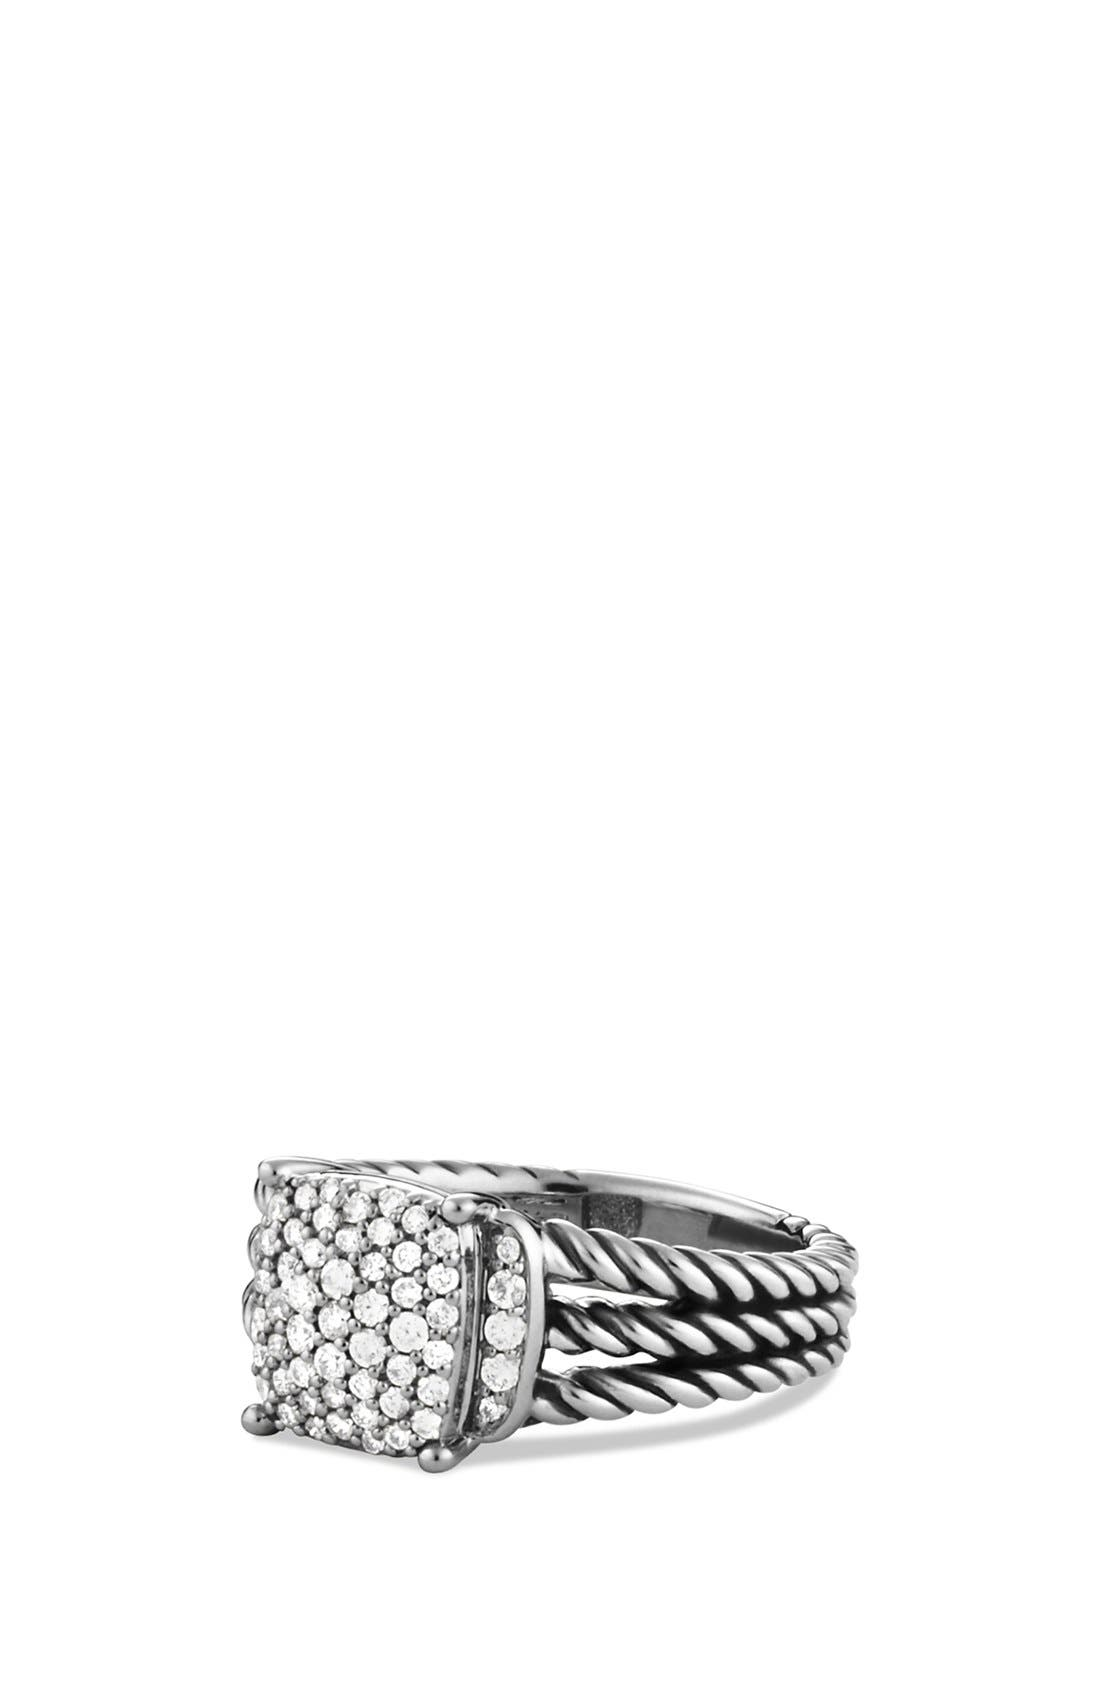 DAVID YURMAN Wheaton Petite Ring with Diamonds